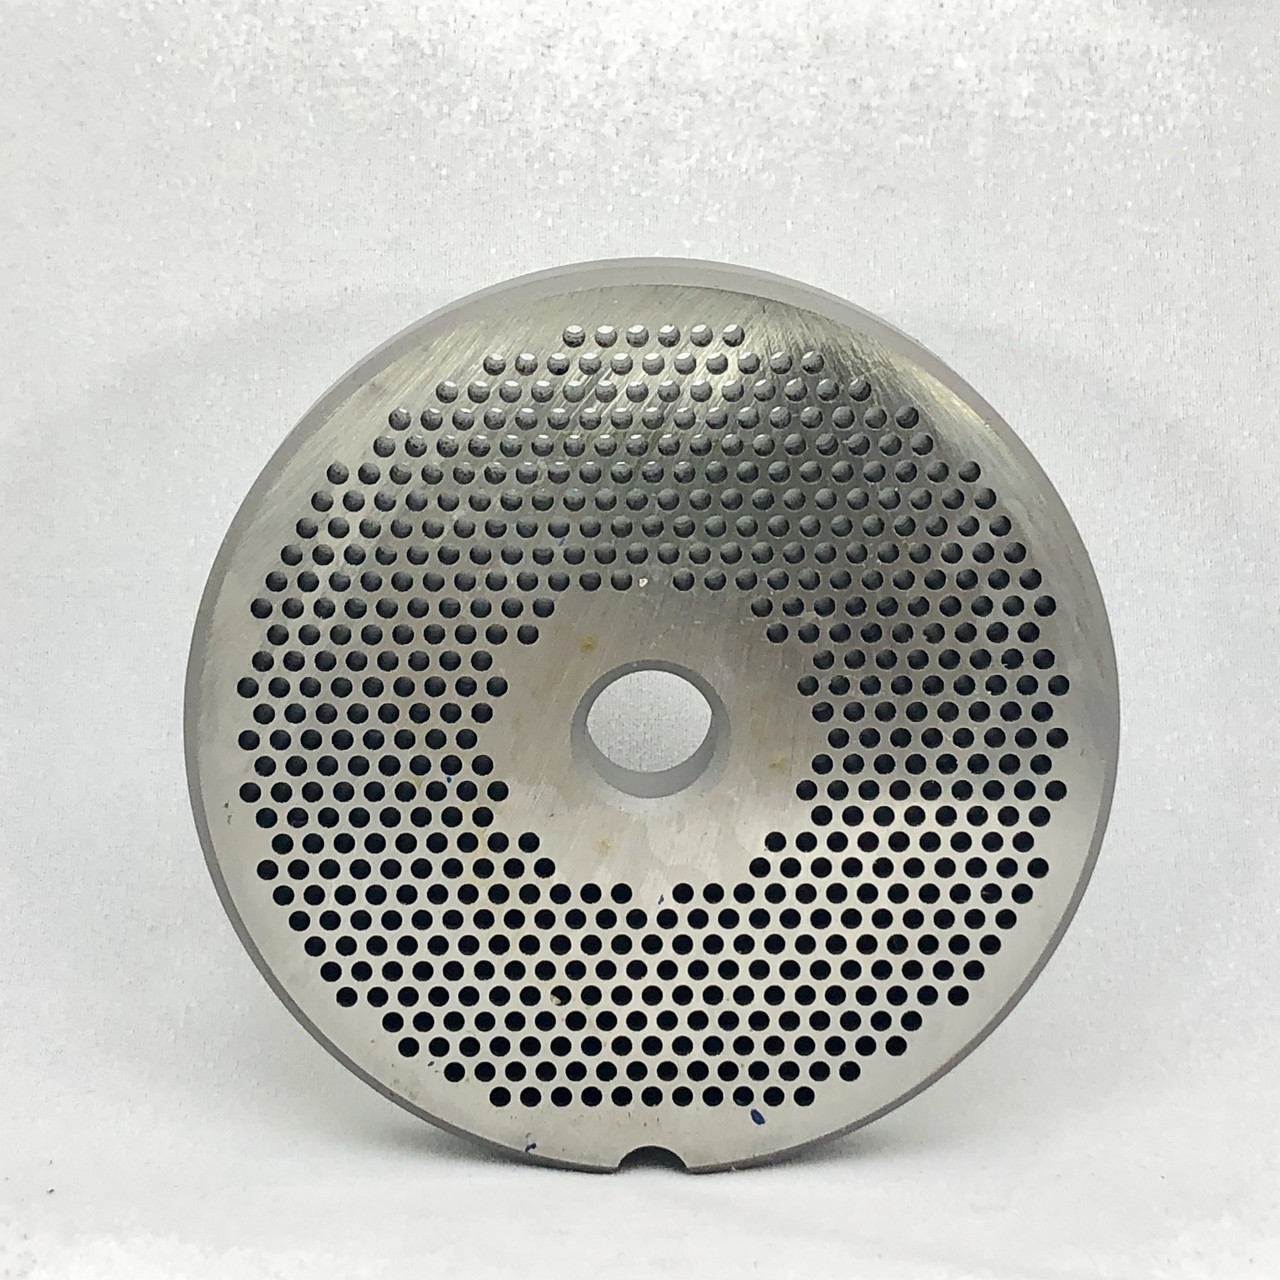 #22 Speco Meat Grinder Plate with 1/8'' Holes - Reversible & Hubbed Plate - 102328 & 102991